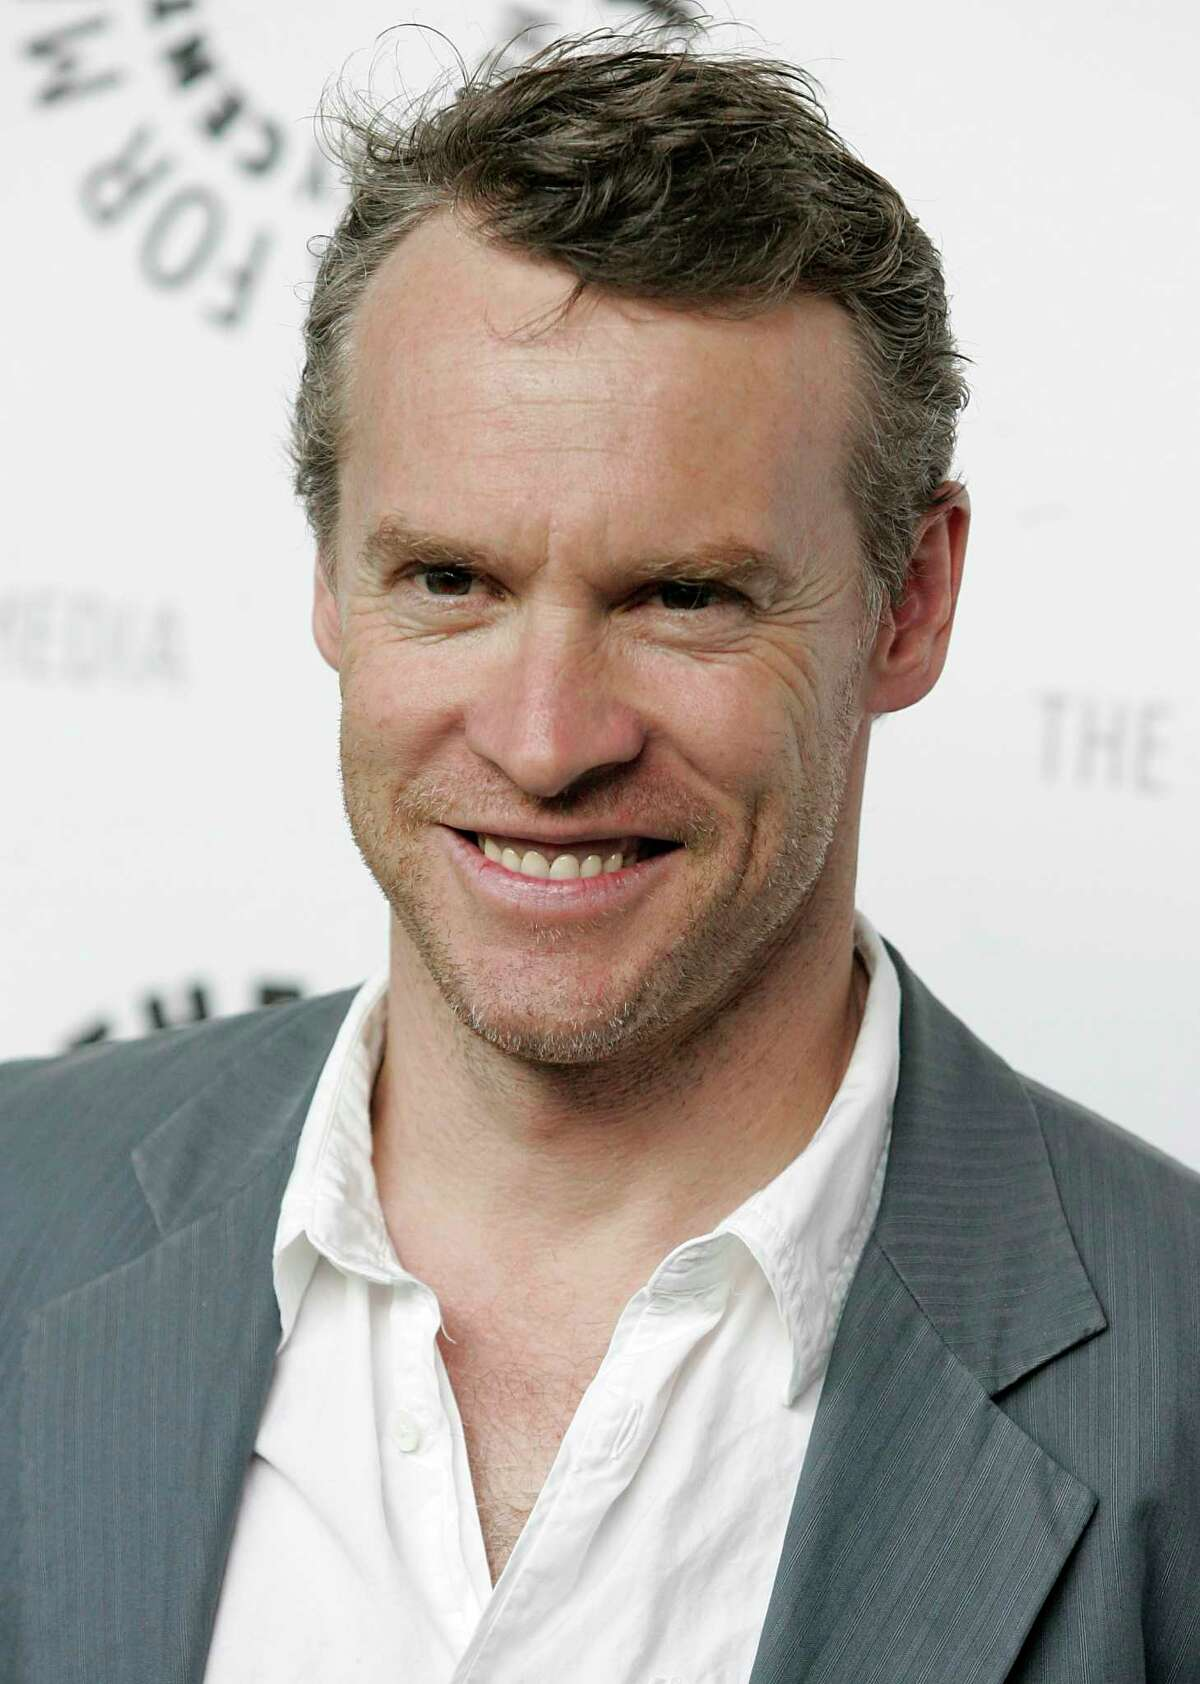 Actor Tate Donovan donated nearly $3,000 to Democrat Beto O'Rourke's campaign for the U.S. Senate.